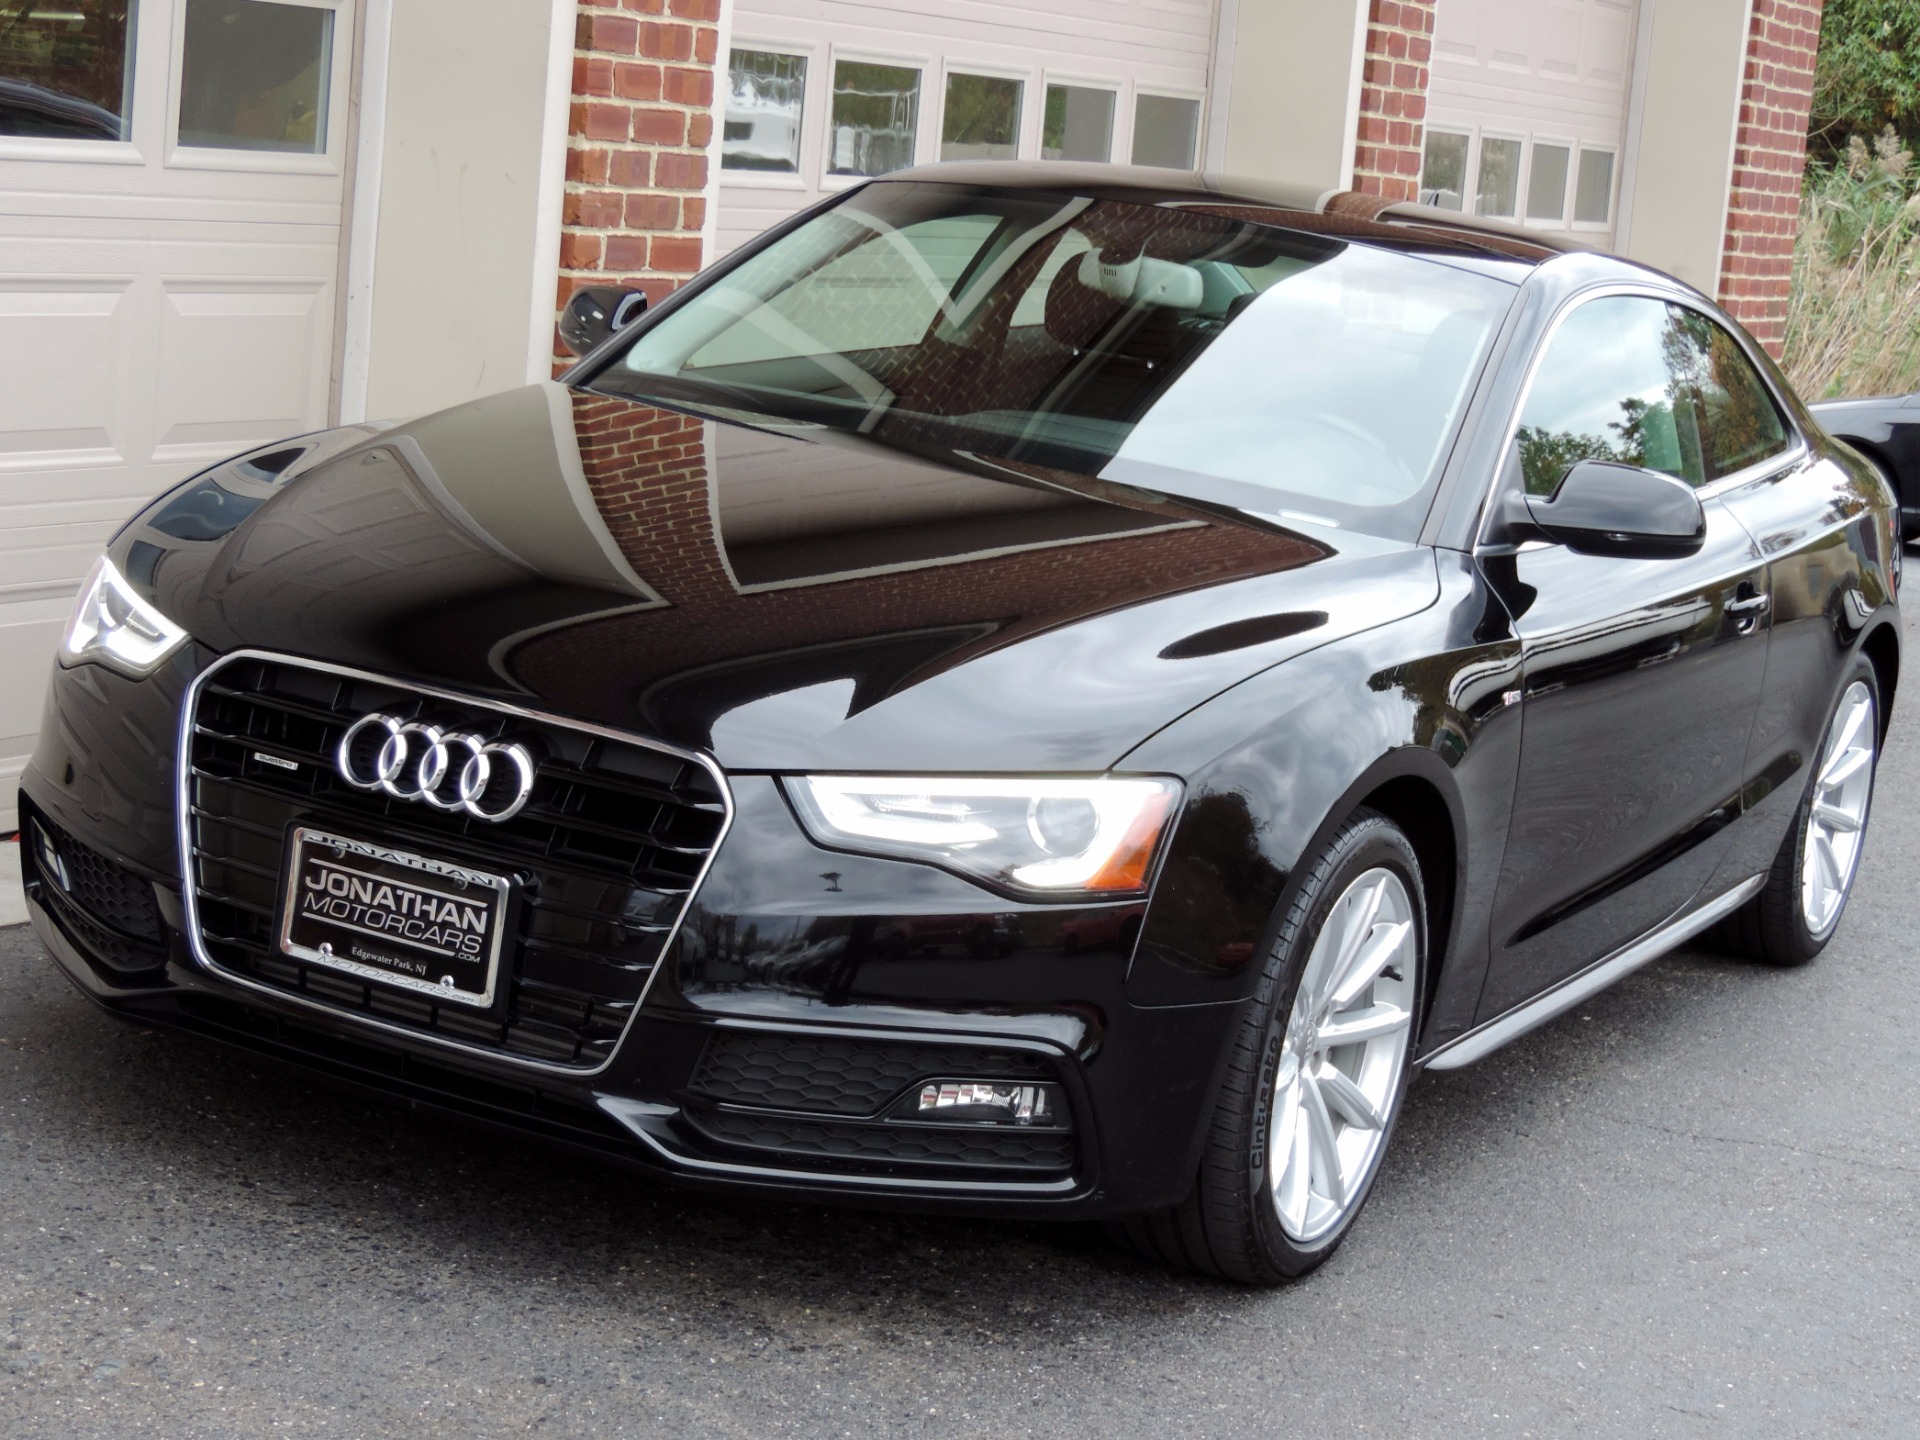 a house new audi for parked side sale cars uk cabriolet outside of